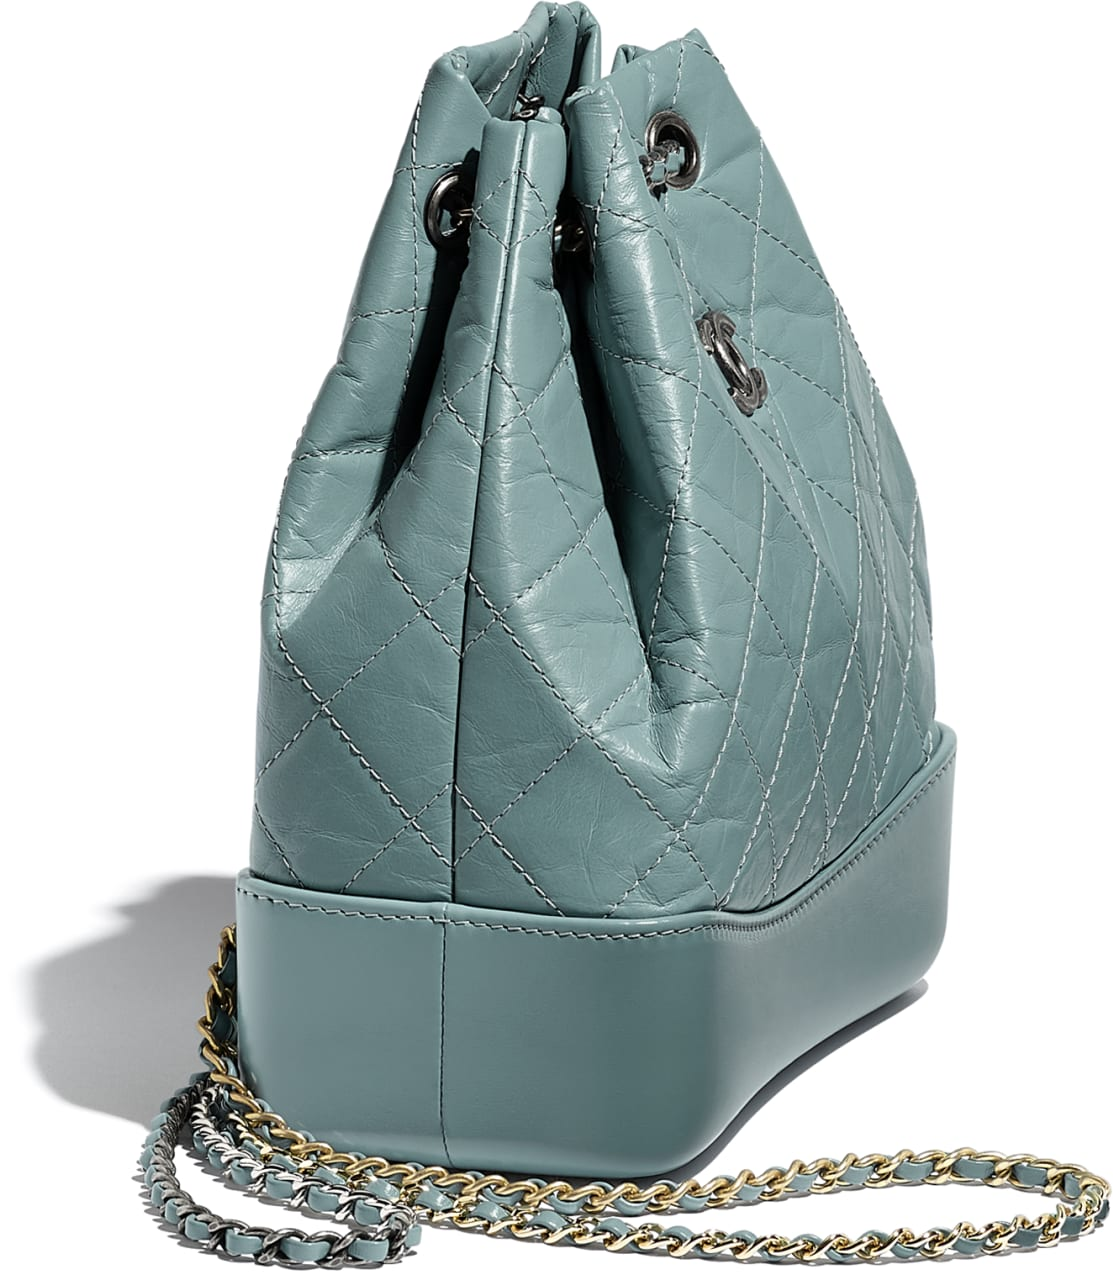 CHANEL'S GABRIELLE Small Backpack